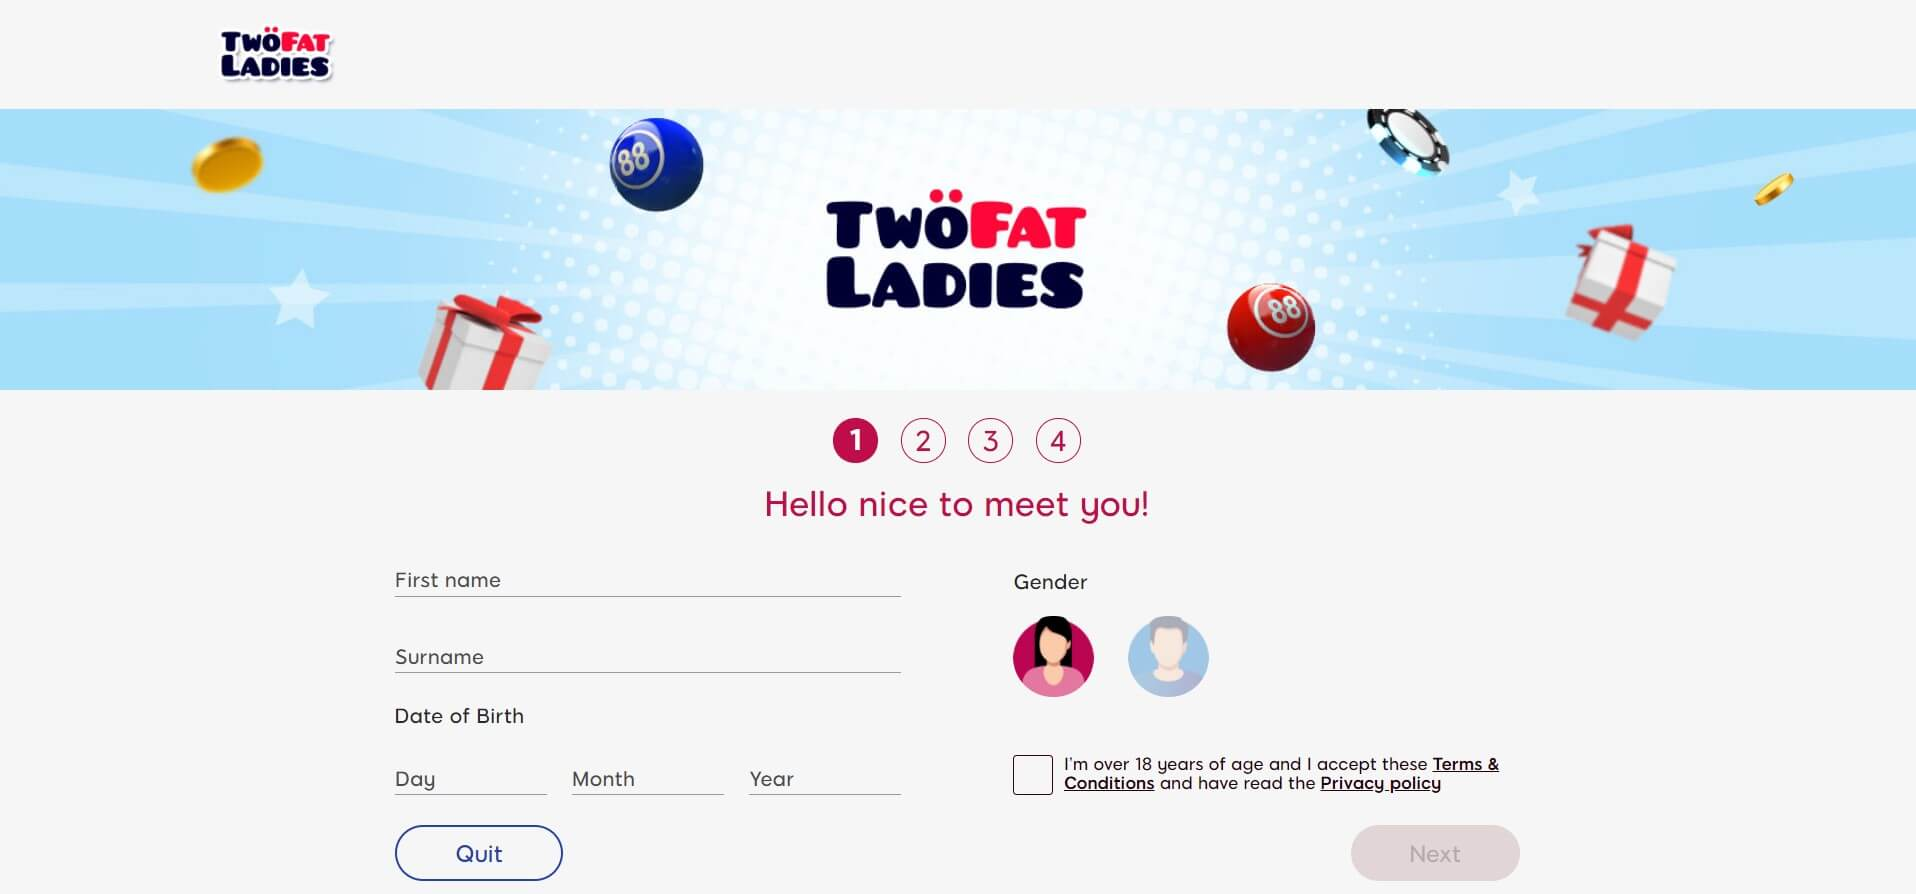 Two Fat Ladies sign up